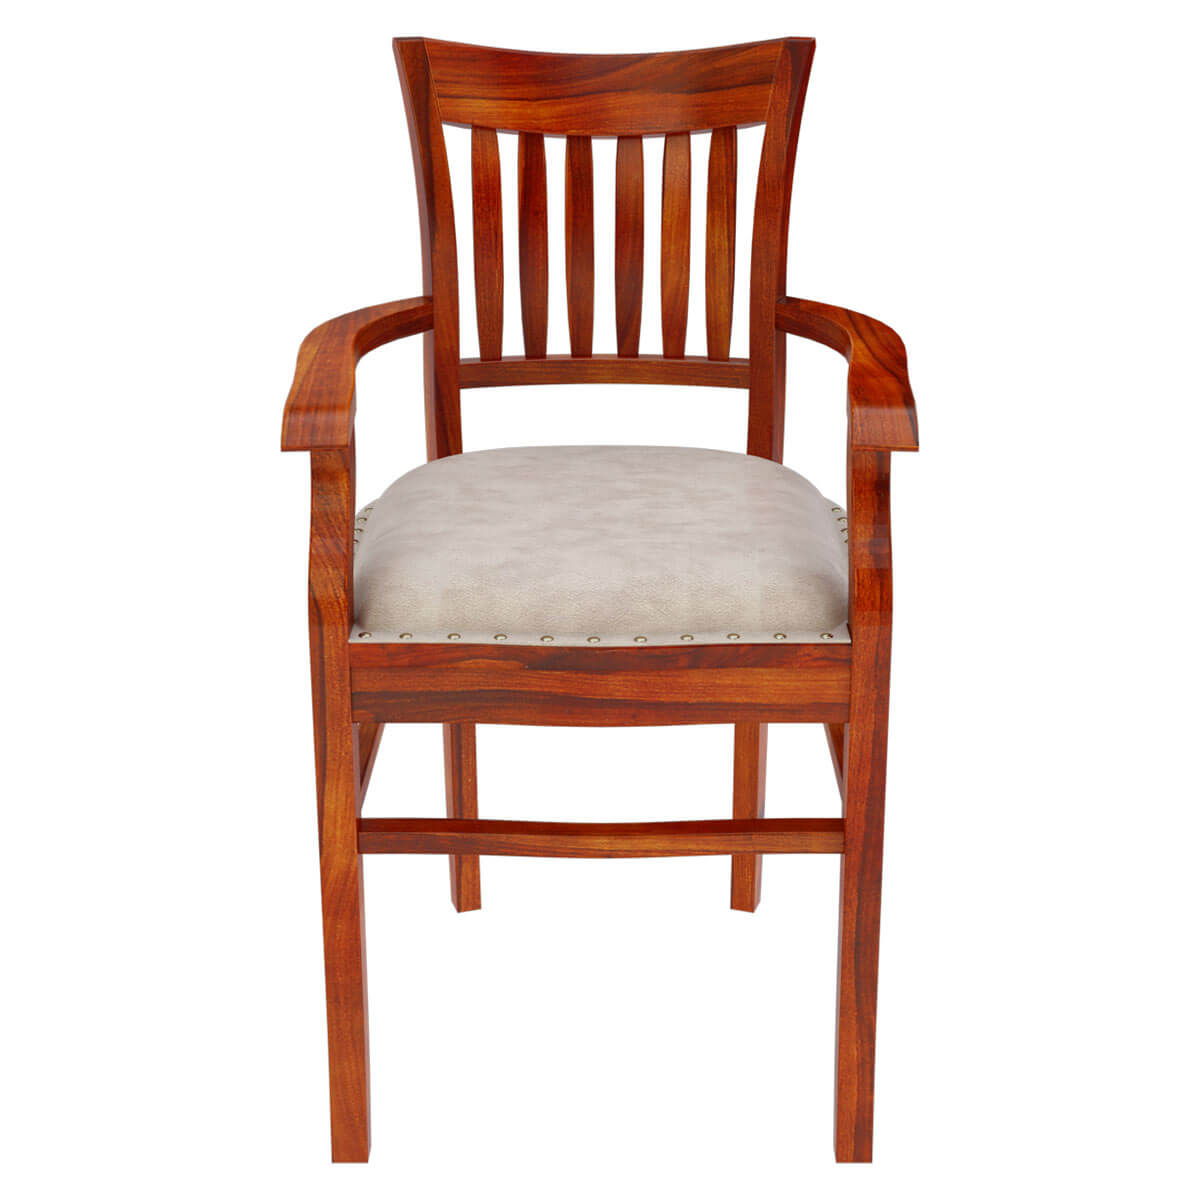 Solid Wood Arm Chair Leather Cushion Dining Furniture : 54451 from www.sierralivingconcepts.com size 1200 x 1200 jpeg 88kB